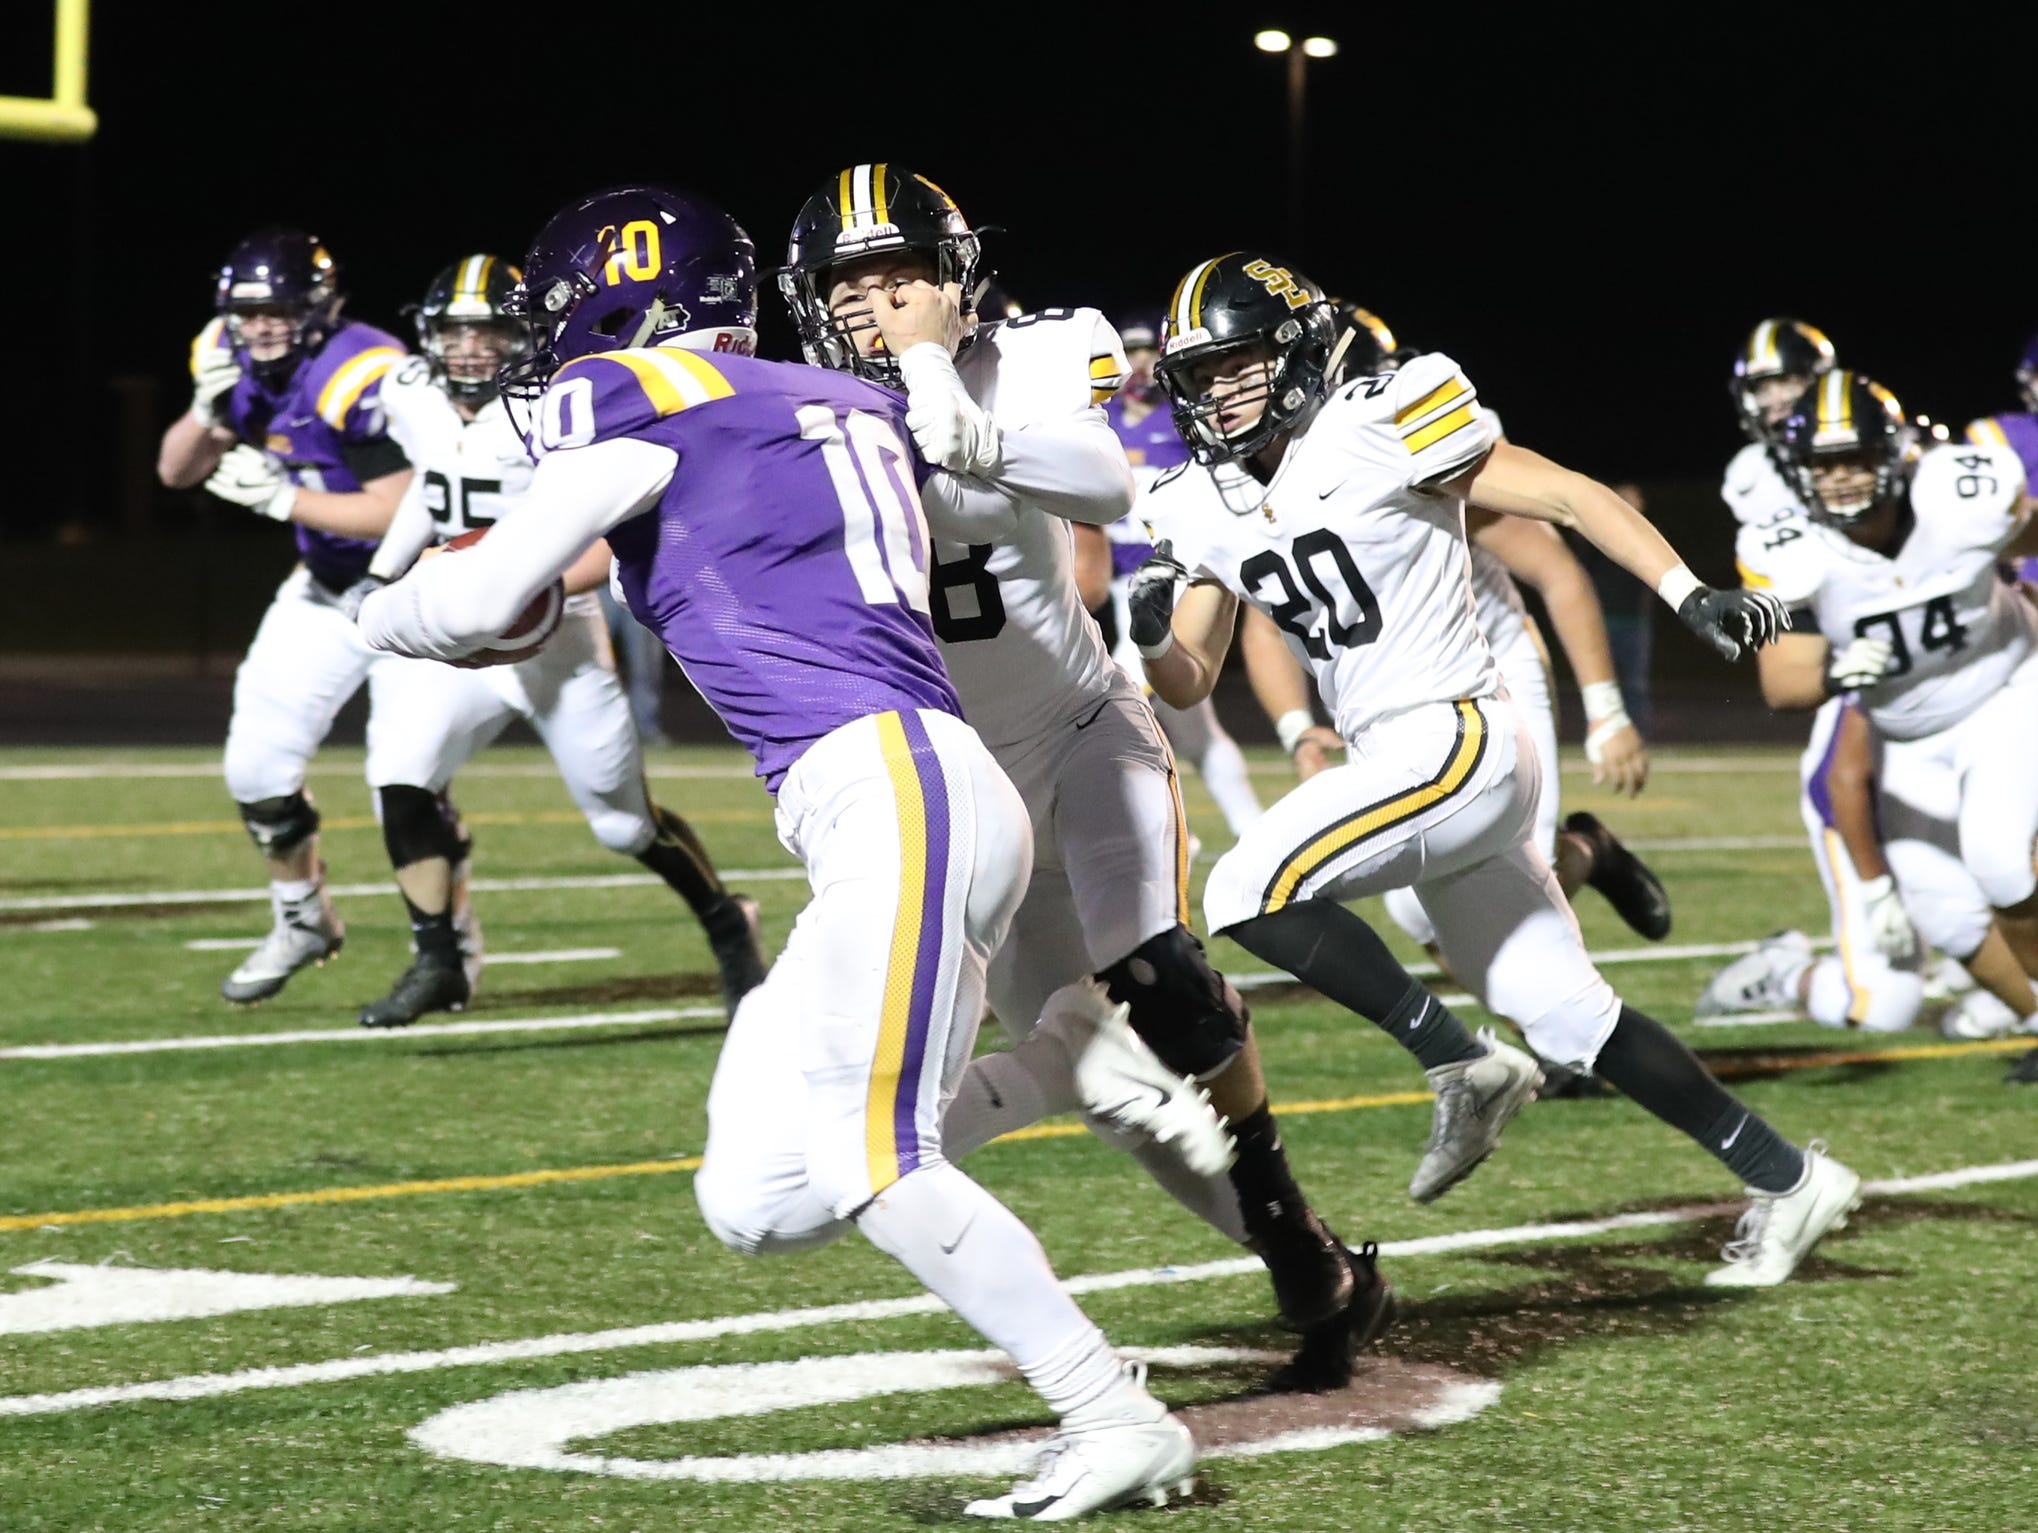 Nov 2, 2018; Johnston, IA, USA; Johnston Dragons Andrew Nord (10) is called for a facemark agains the Southeast Polk Rams  at Johnston Stadium. The Rams beat the Dragons 21-7.